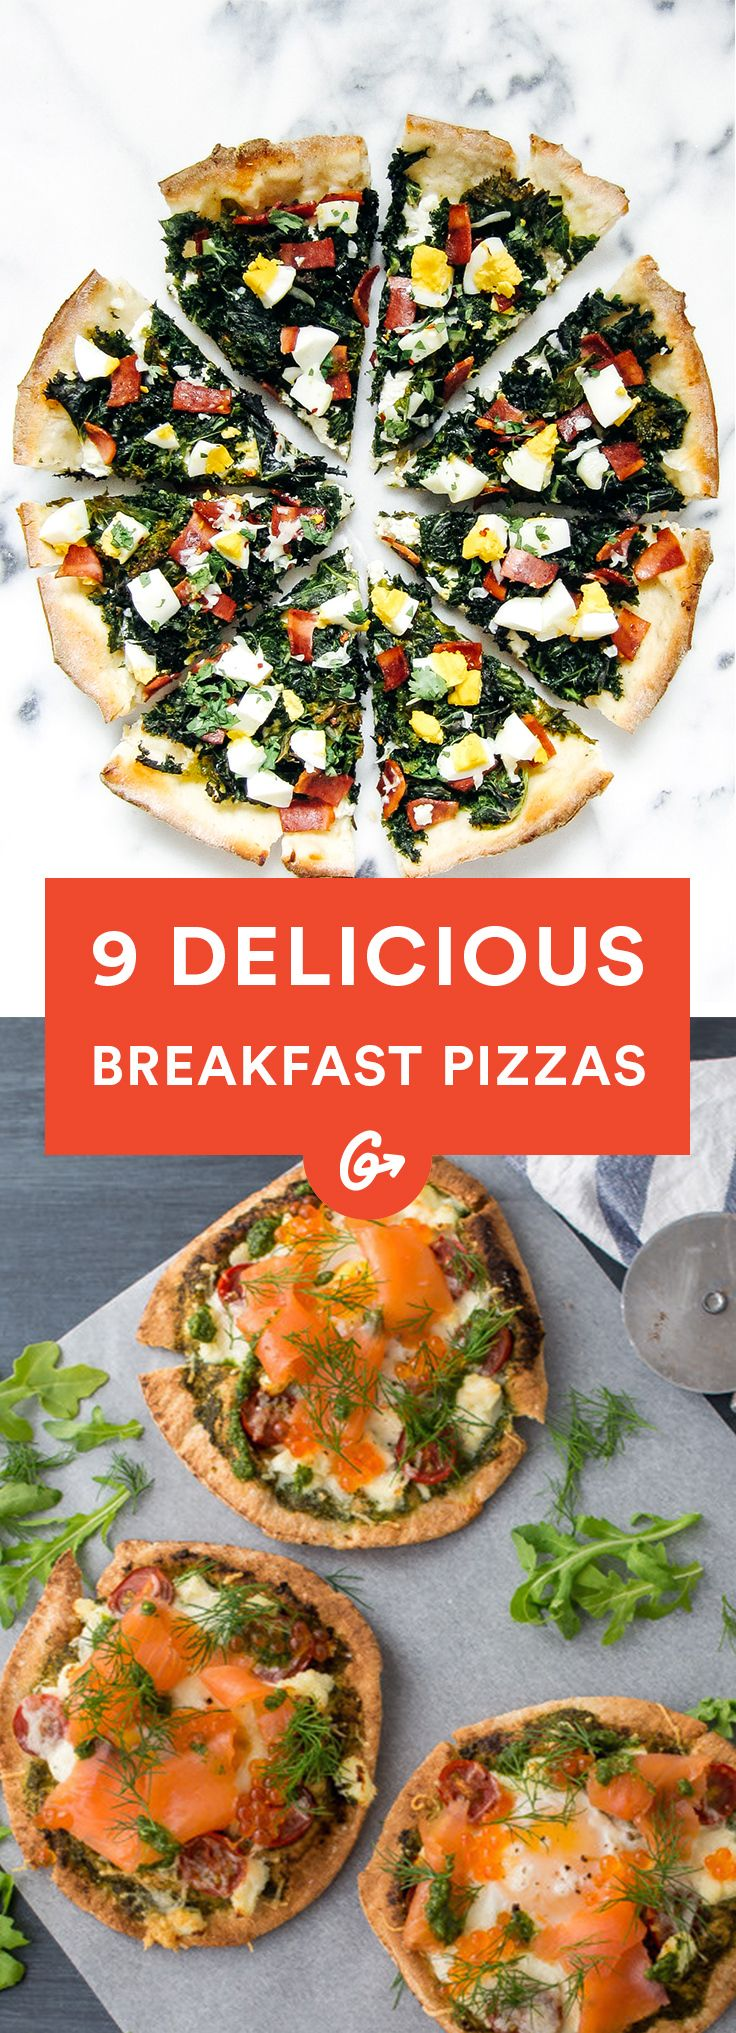 These recipes take breakfast staples, from eggs to bacon to smoked salmon, and turn them into a... #healthy #breakfast #pizza http://greatist.com/eat/healthy-breakfast-pizza-recipes